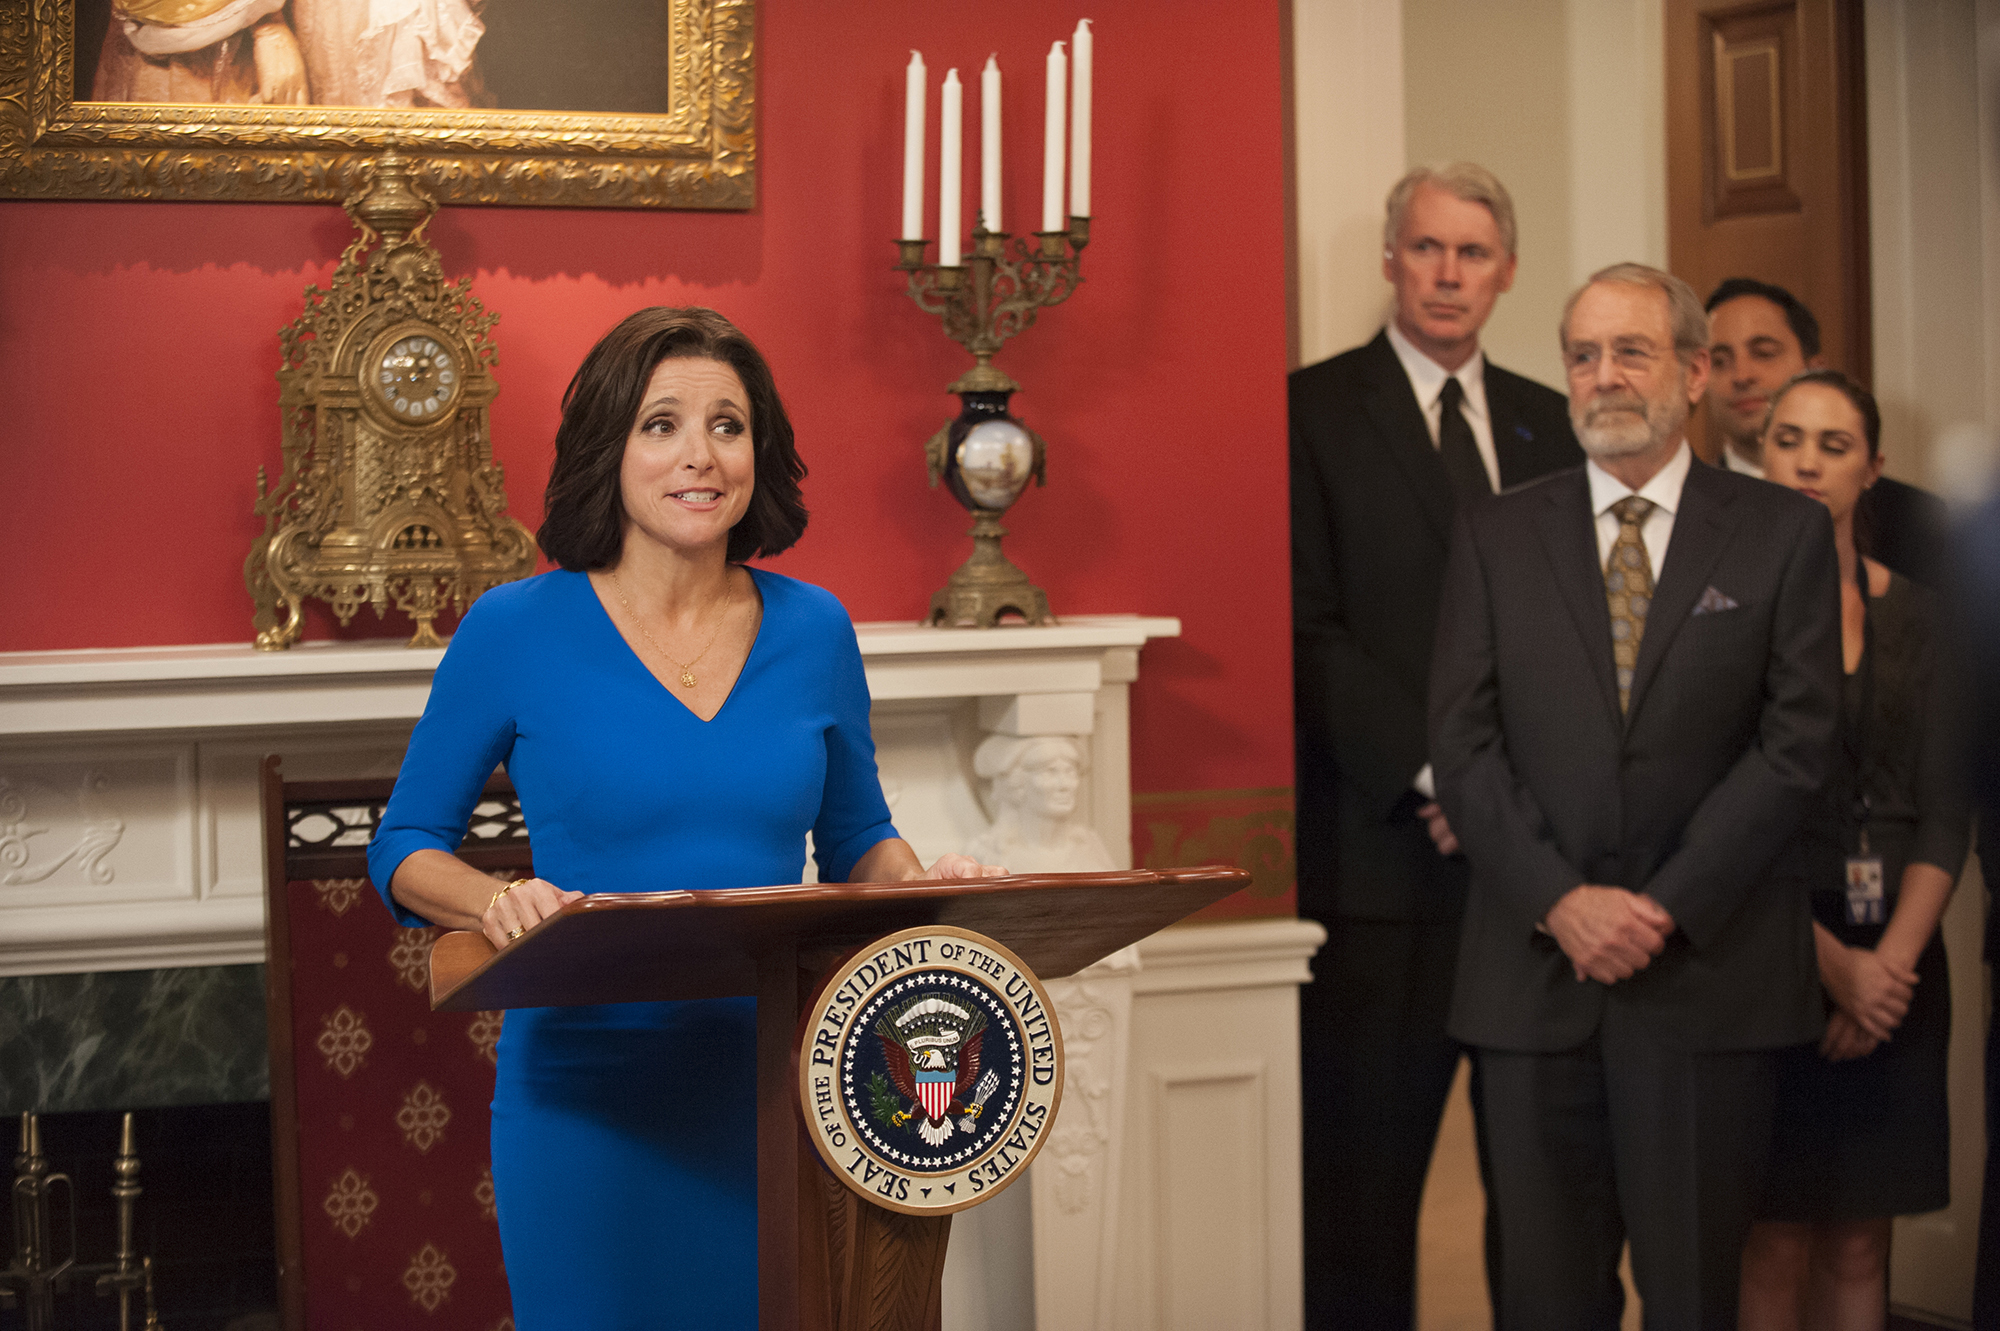 Julia Louis Dreyfous as Selina Meyer, Vice President of the United States in HBO's comedy Veep.